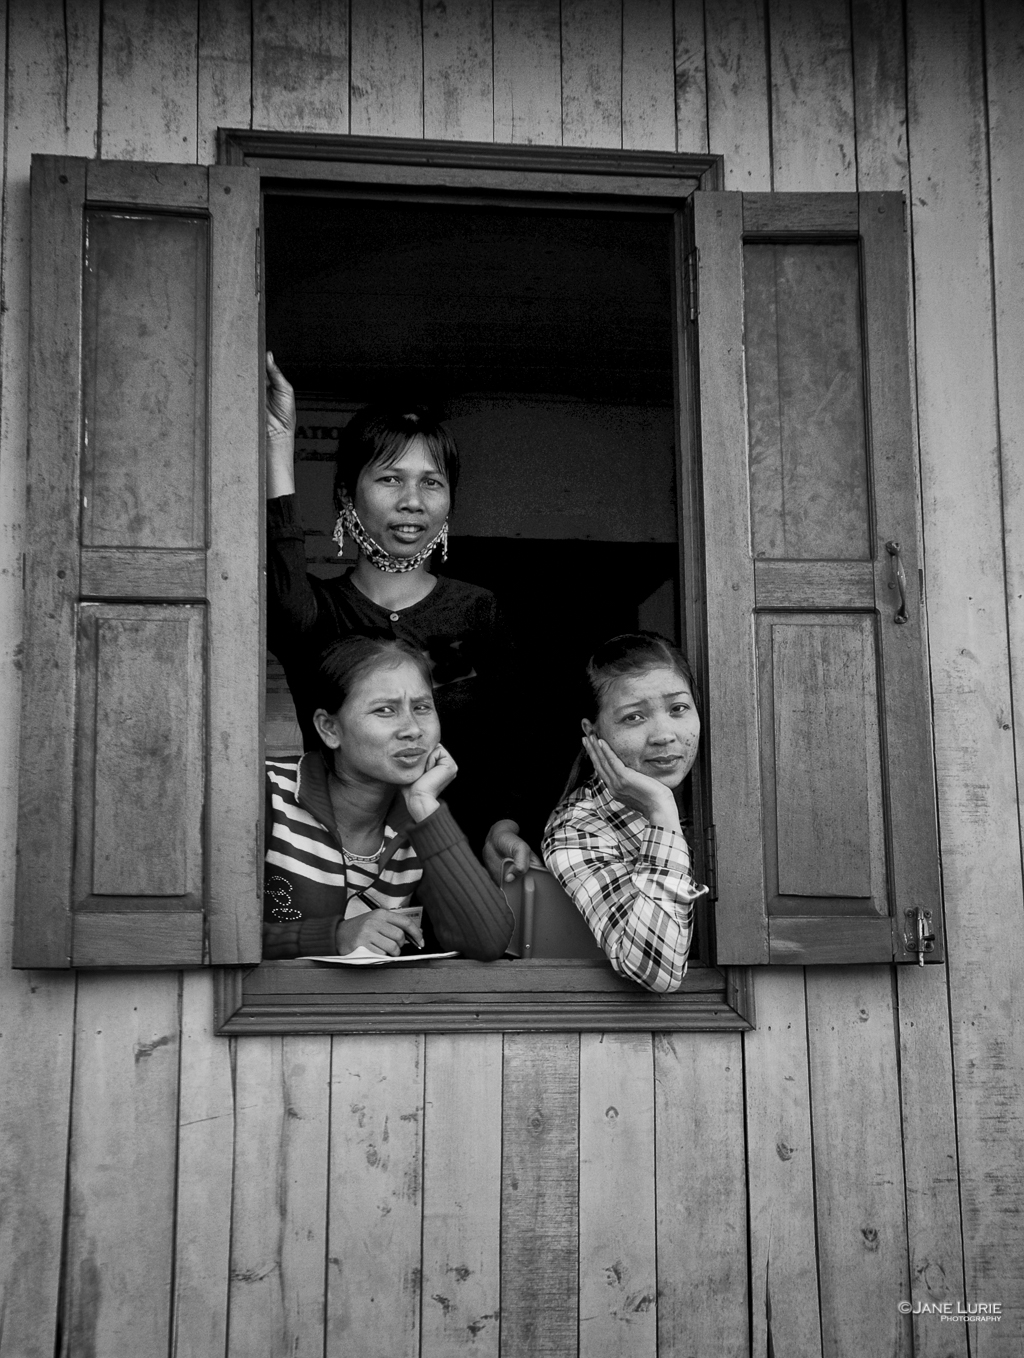 Portrait, Travel, Black and White, Monochrome, SE Asia